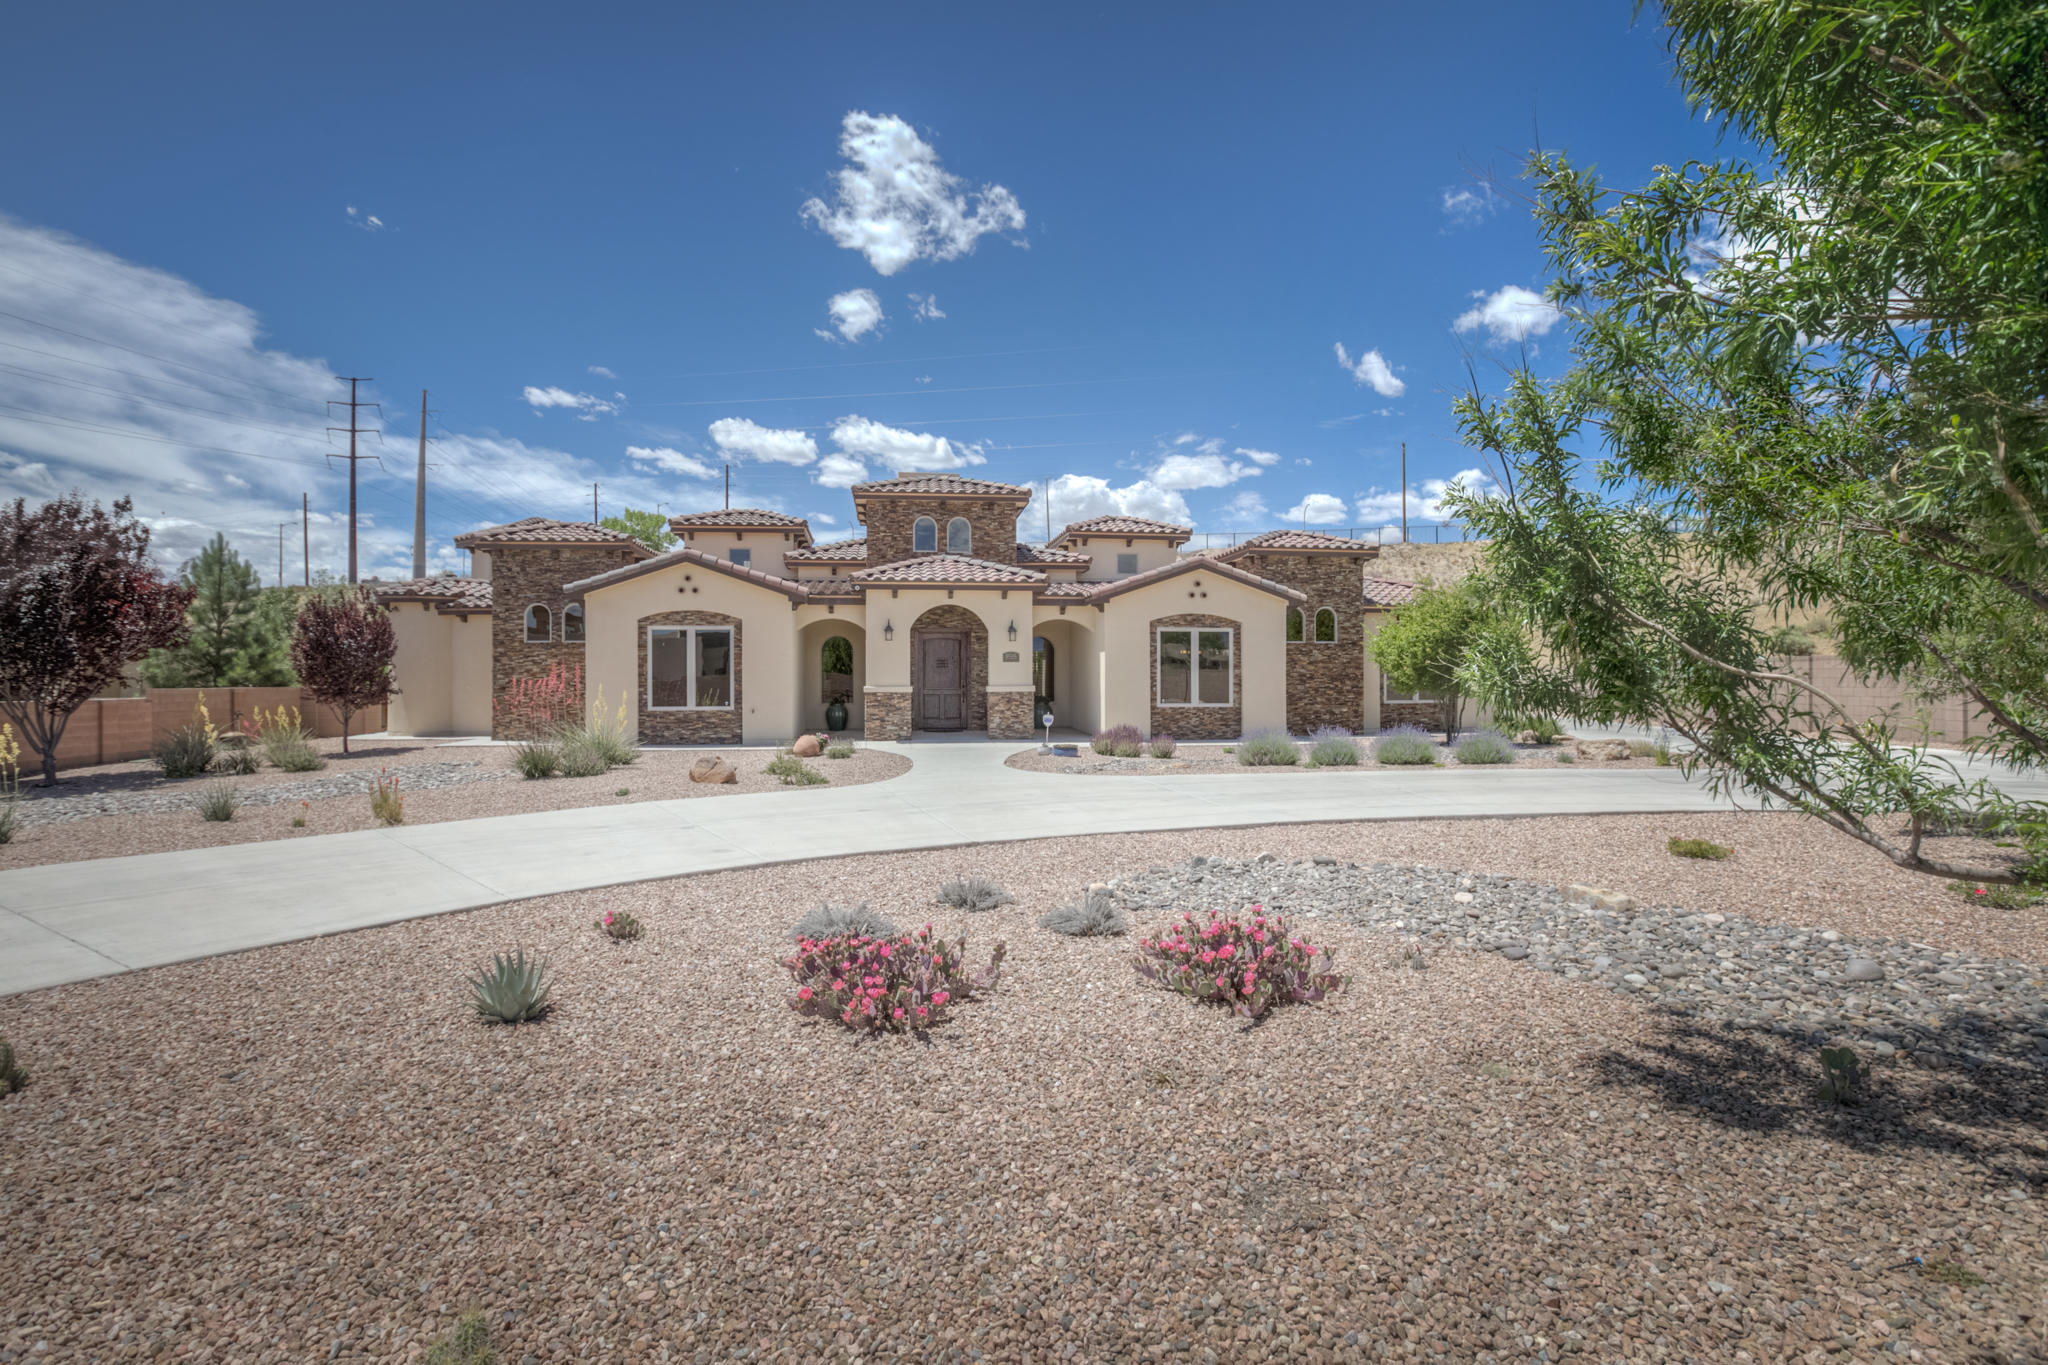 Lovely single story Tuscan beauty located in the luxurious Black Farm Estates.Situated on 1.14 acres on a fully landscaped lot w/custom fencing. One of a kind details greet you when you arrive w/ a hand carved door,stone entry,foyer w/ tower,chandelier & fireplace. Grand open living space is perfect for entertaining.It offers picture windows, wood flooring,T&G and beamed ceiling & stone accents.The luxurious oversized master suite offers a private retreat tucked away from the mini master & two additional bedrooms. Pamper yourself in the oversized master suite which includes a spa like bathroom that has a tower and elegant chandelier.Relax in the soak tub & enjoy the fireplace, luxurious snail shower, two dressing areas & two closets. The residence also has a Study/Media Room. Family room